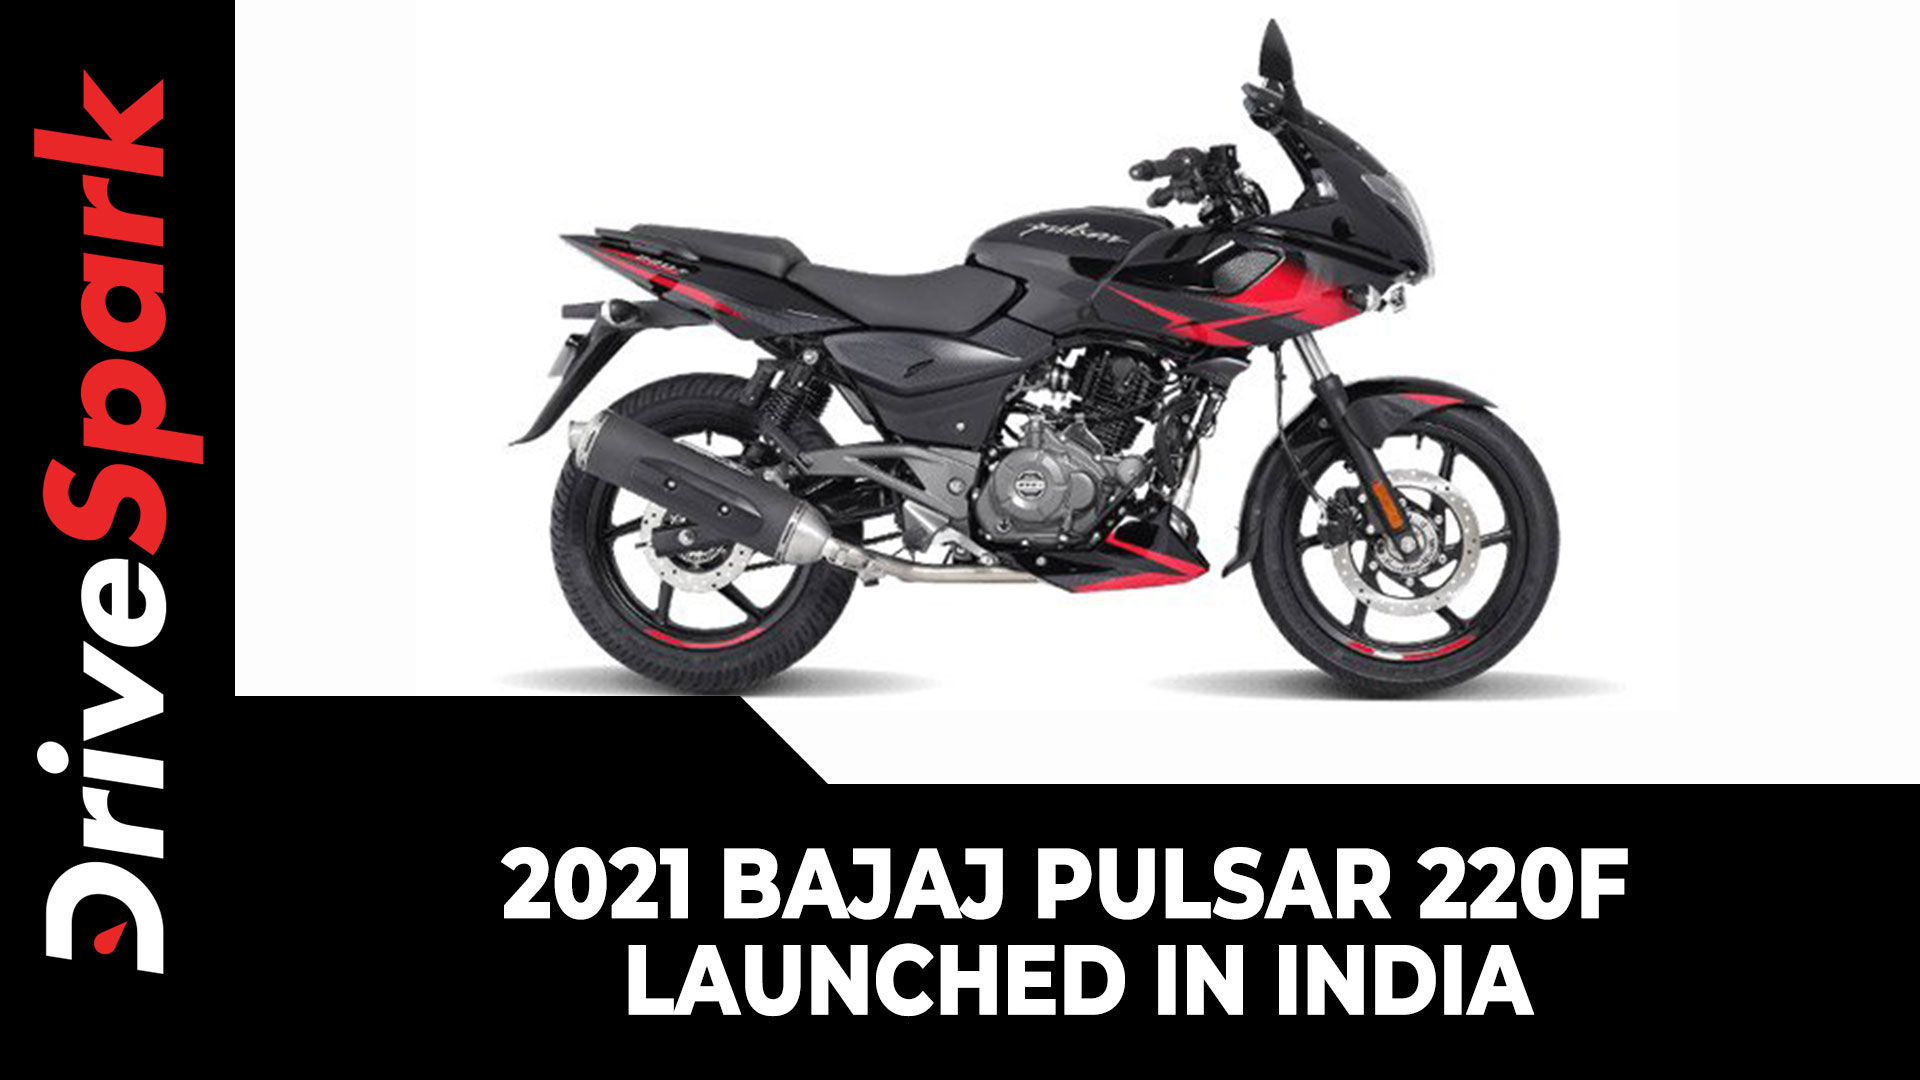 2021 Bajaj Pulsar 220F Launched In India | Prices, Specs, Features & All Other Updates Explained